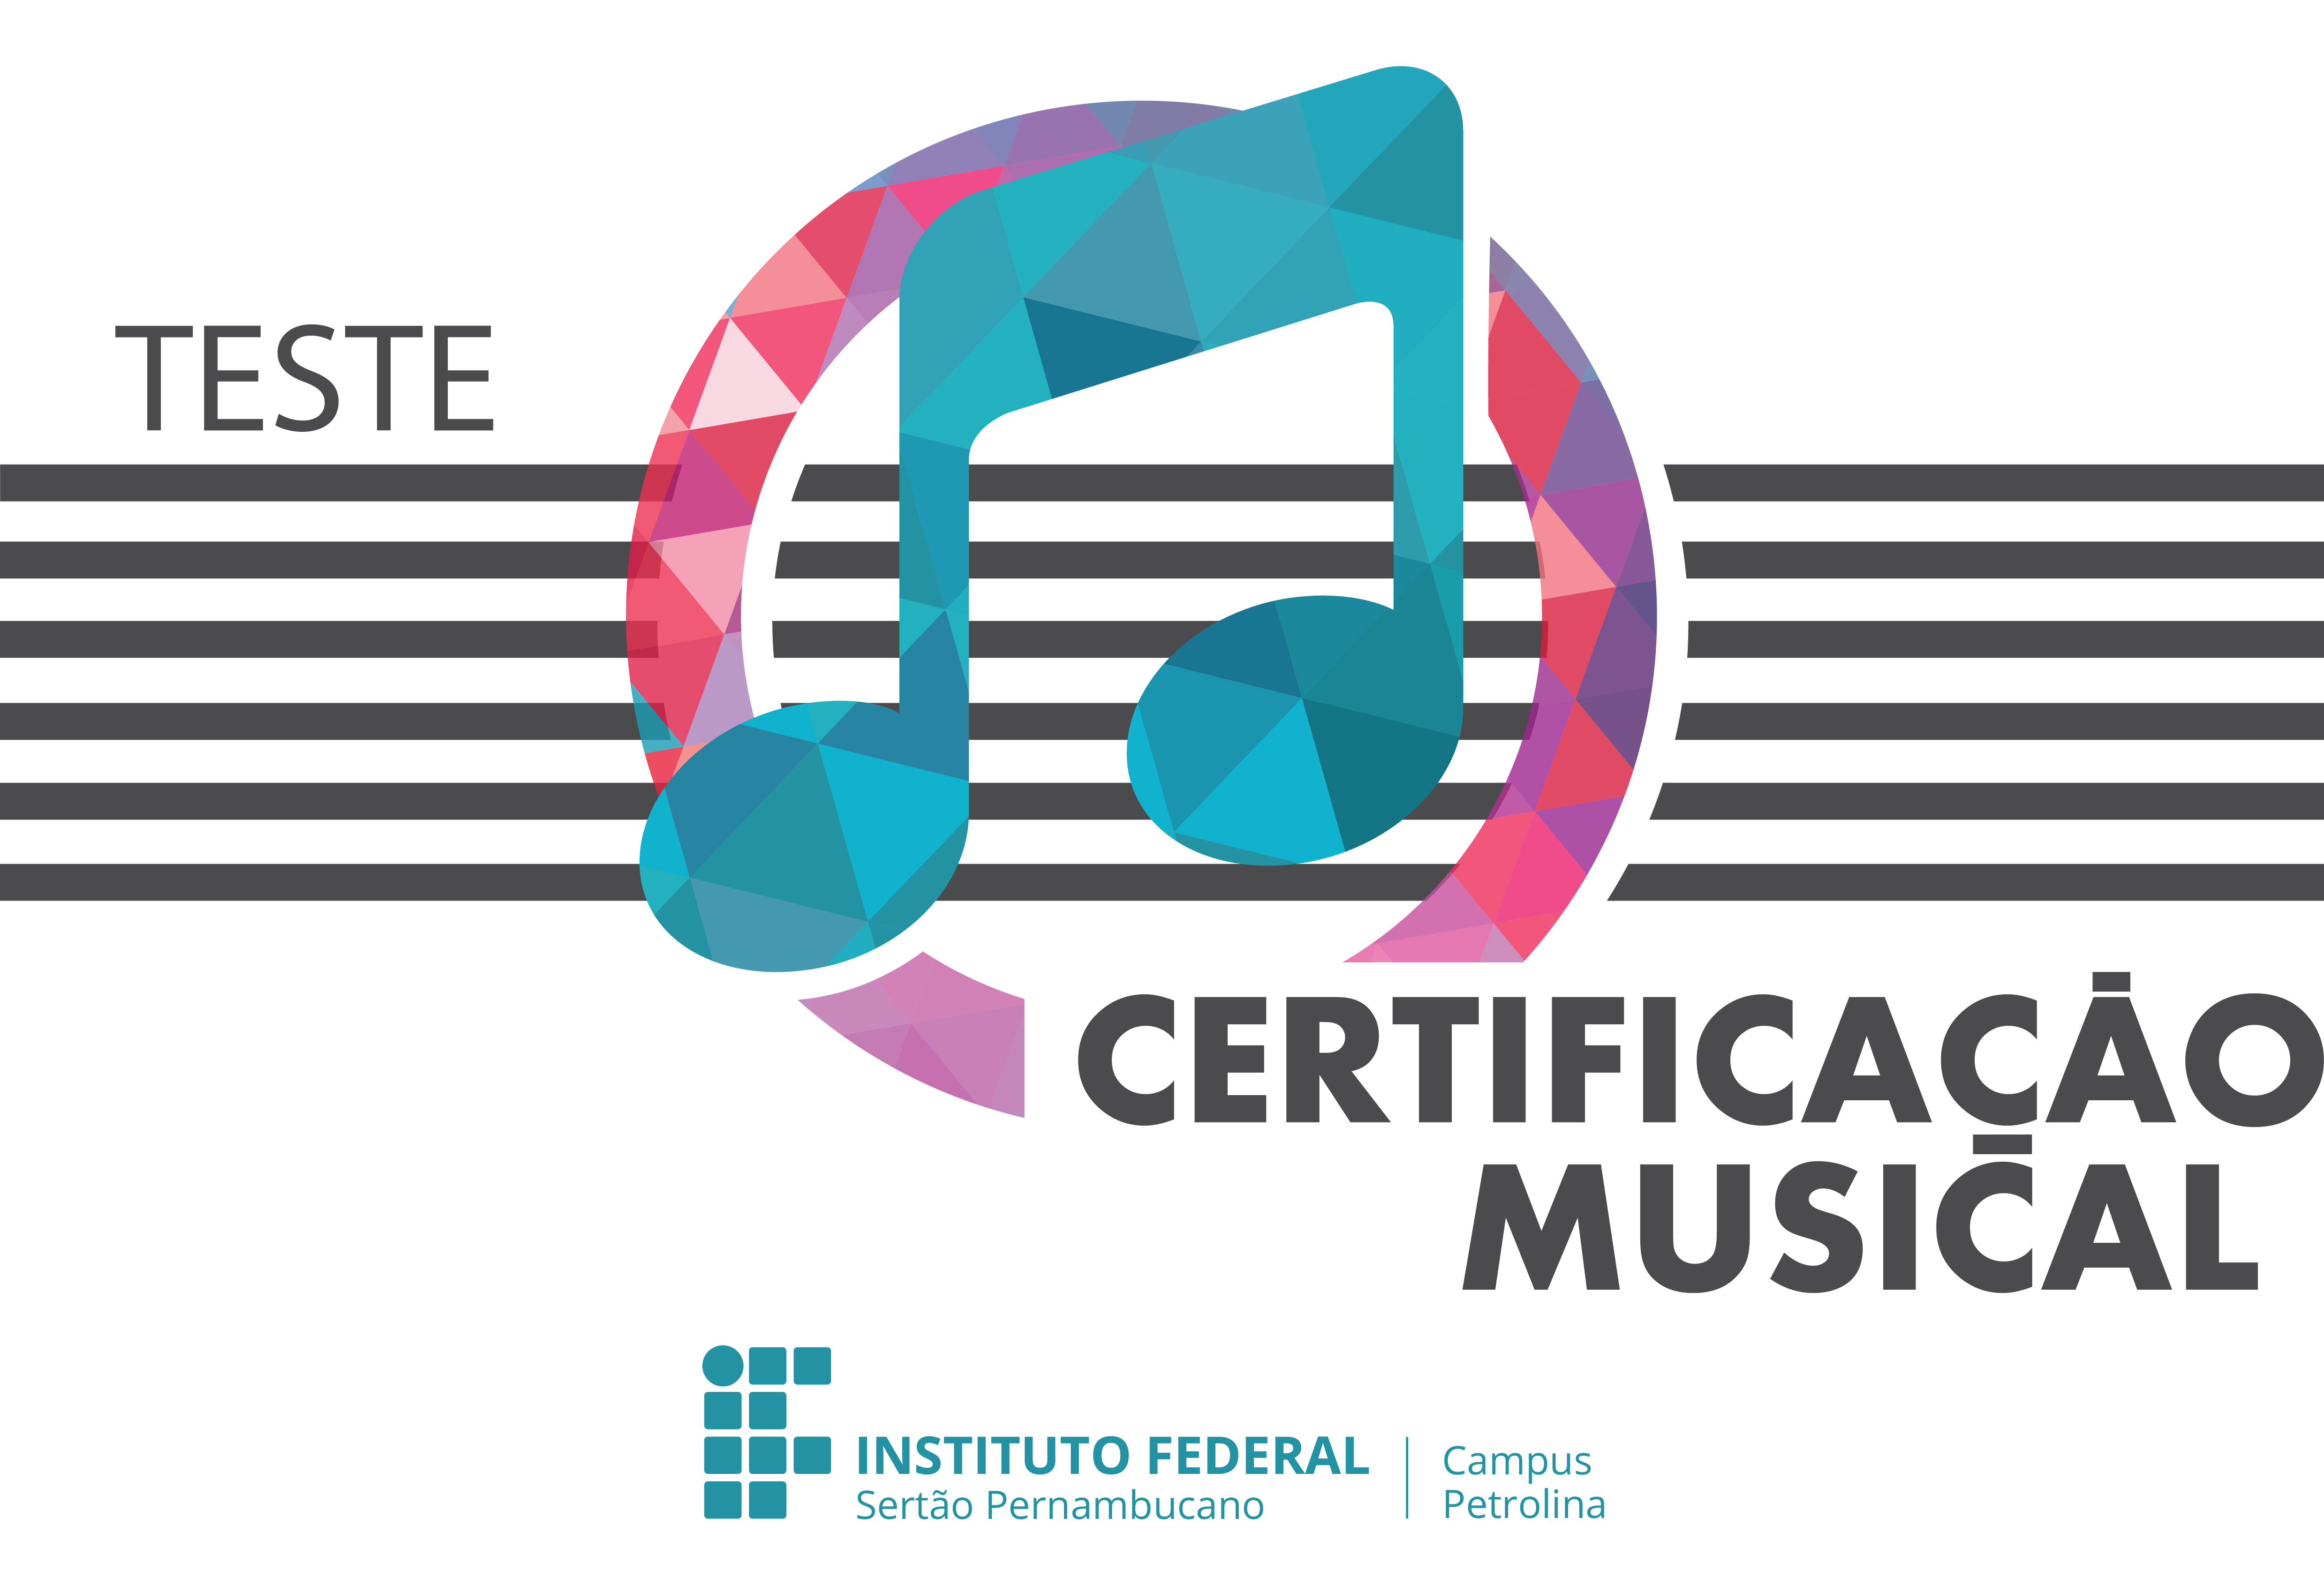 images/Campus_Petrolina/2018/Imagens/Junho/banner%20%20CERTIFICAO%20MUSICA.jpg